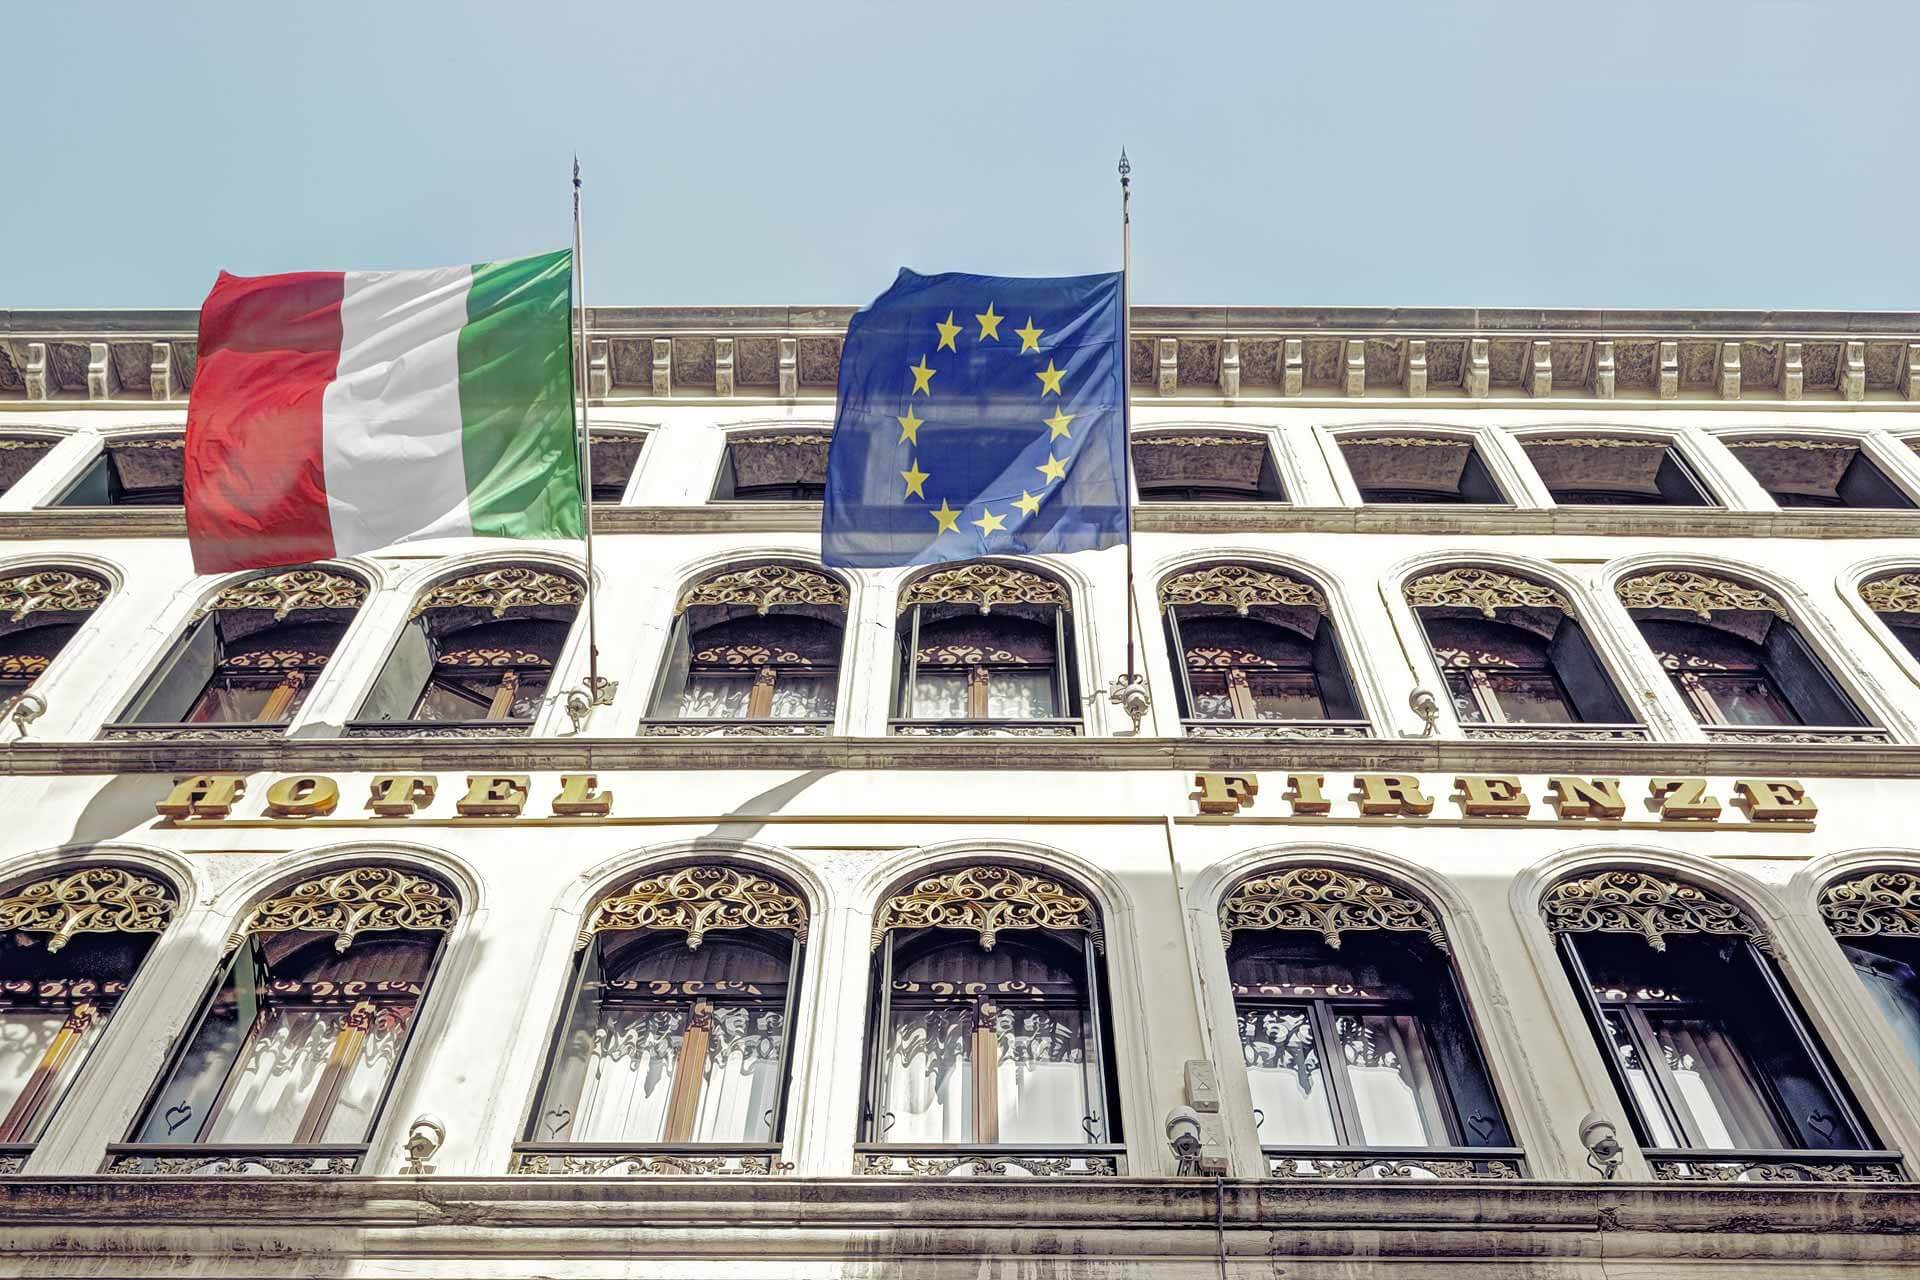 European hotels generated revenue but have trouble holding onto it